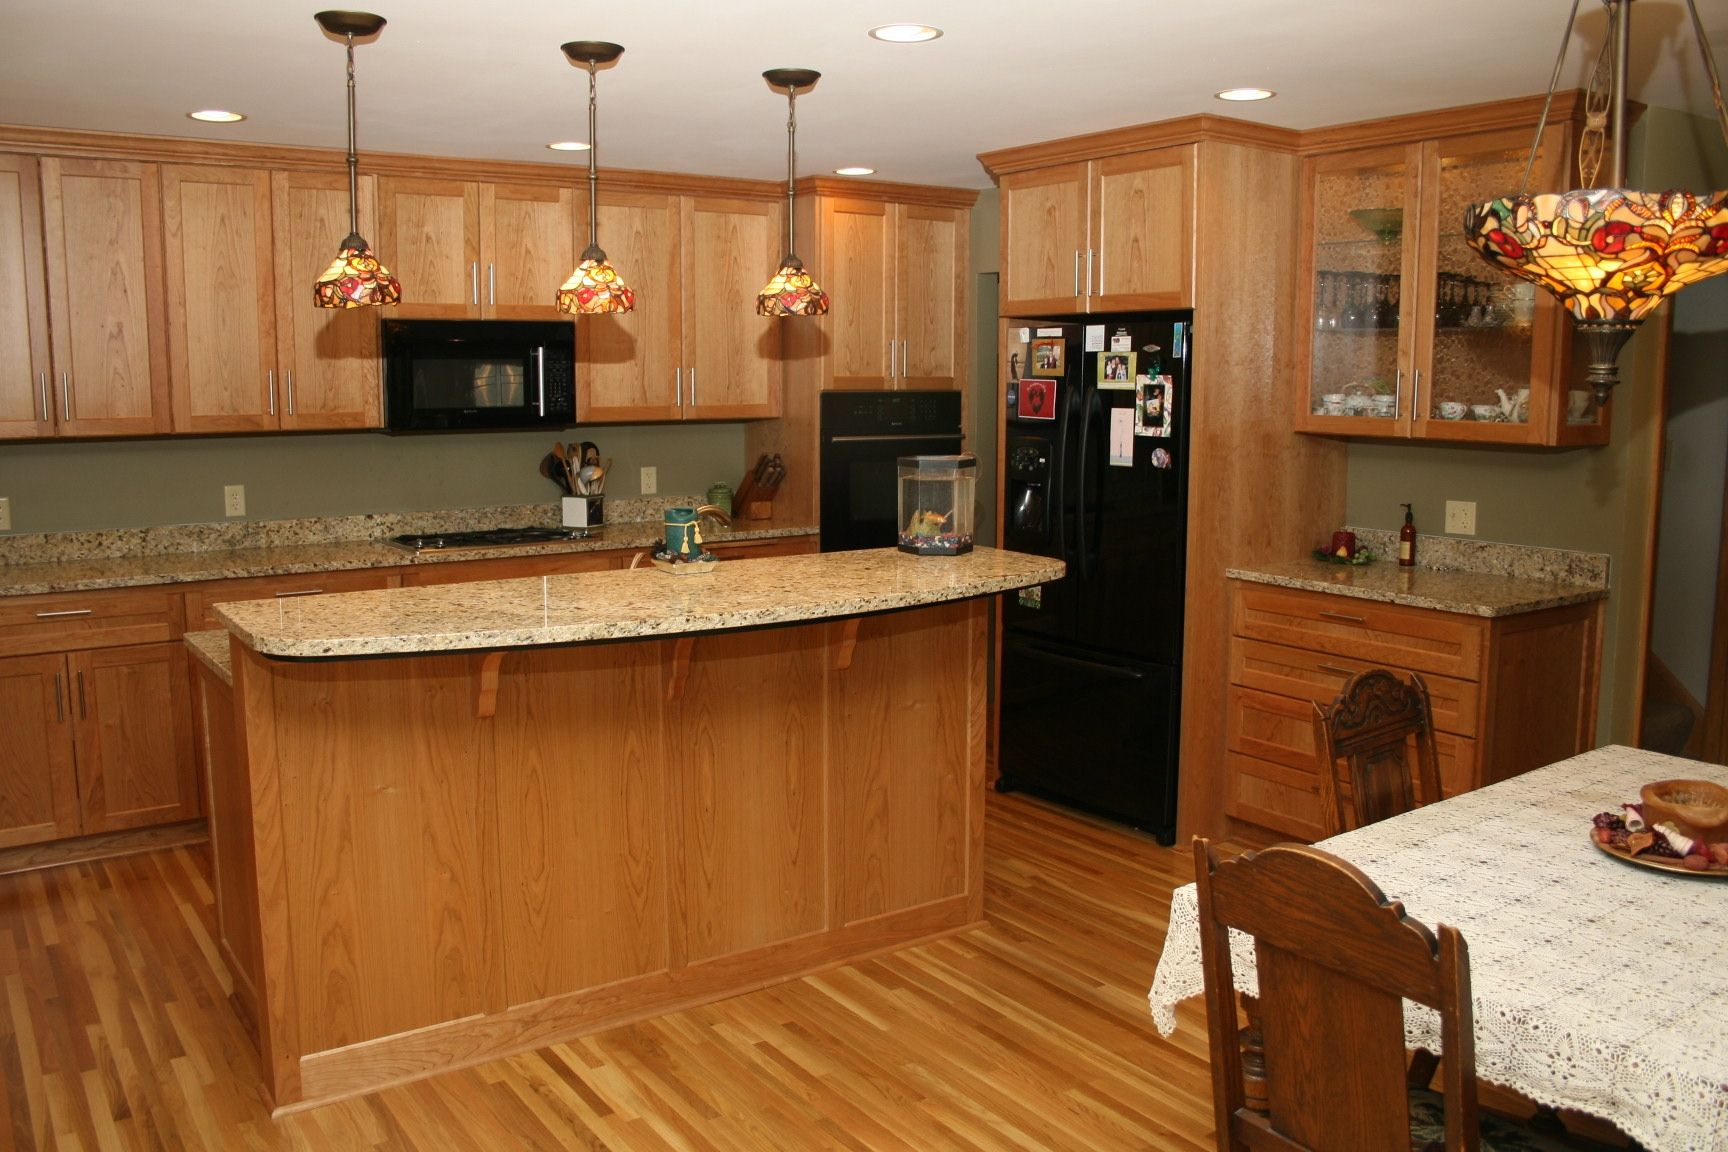 Granite Countertops Oak Cabinets Pictures 2015 Using Countertop For Kitchen Design Ideas Used Sale What Do You Use To Clean